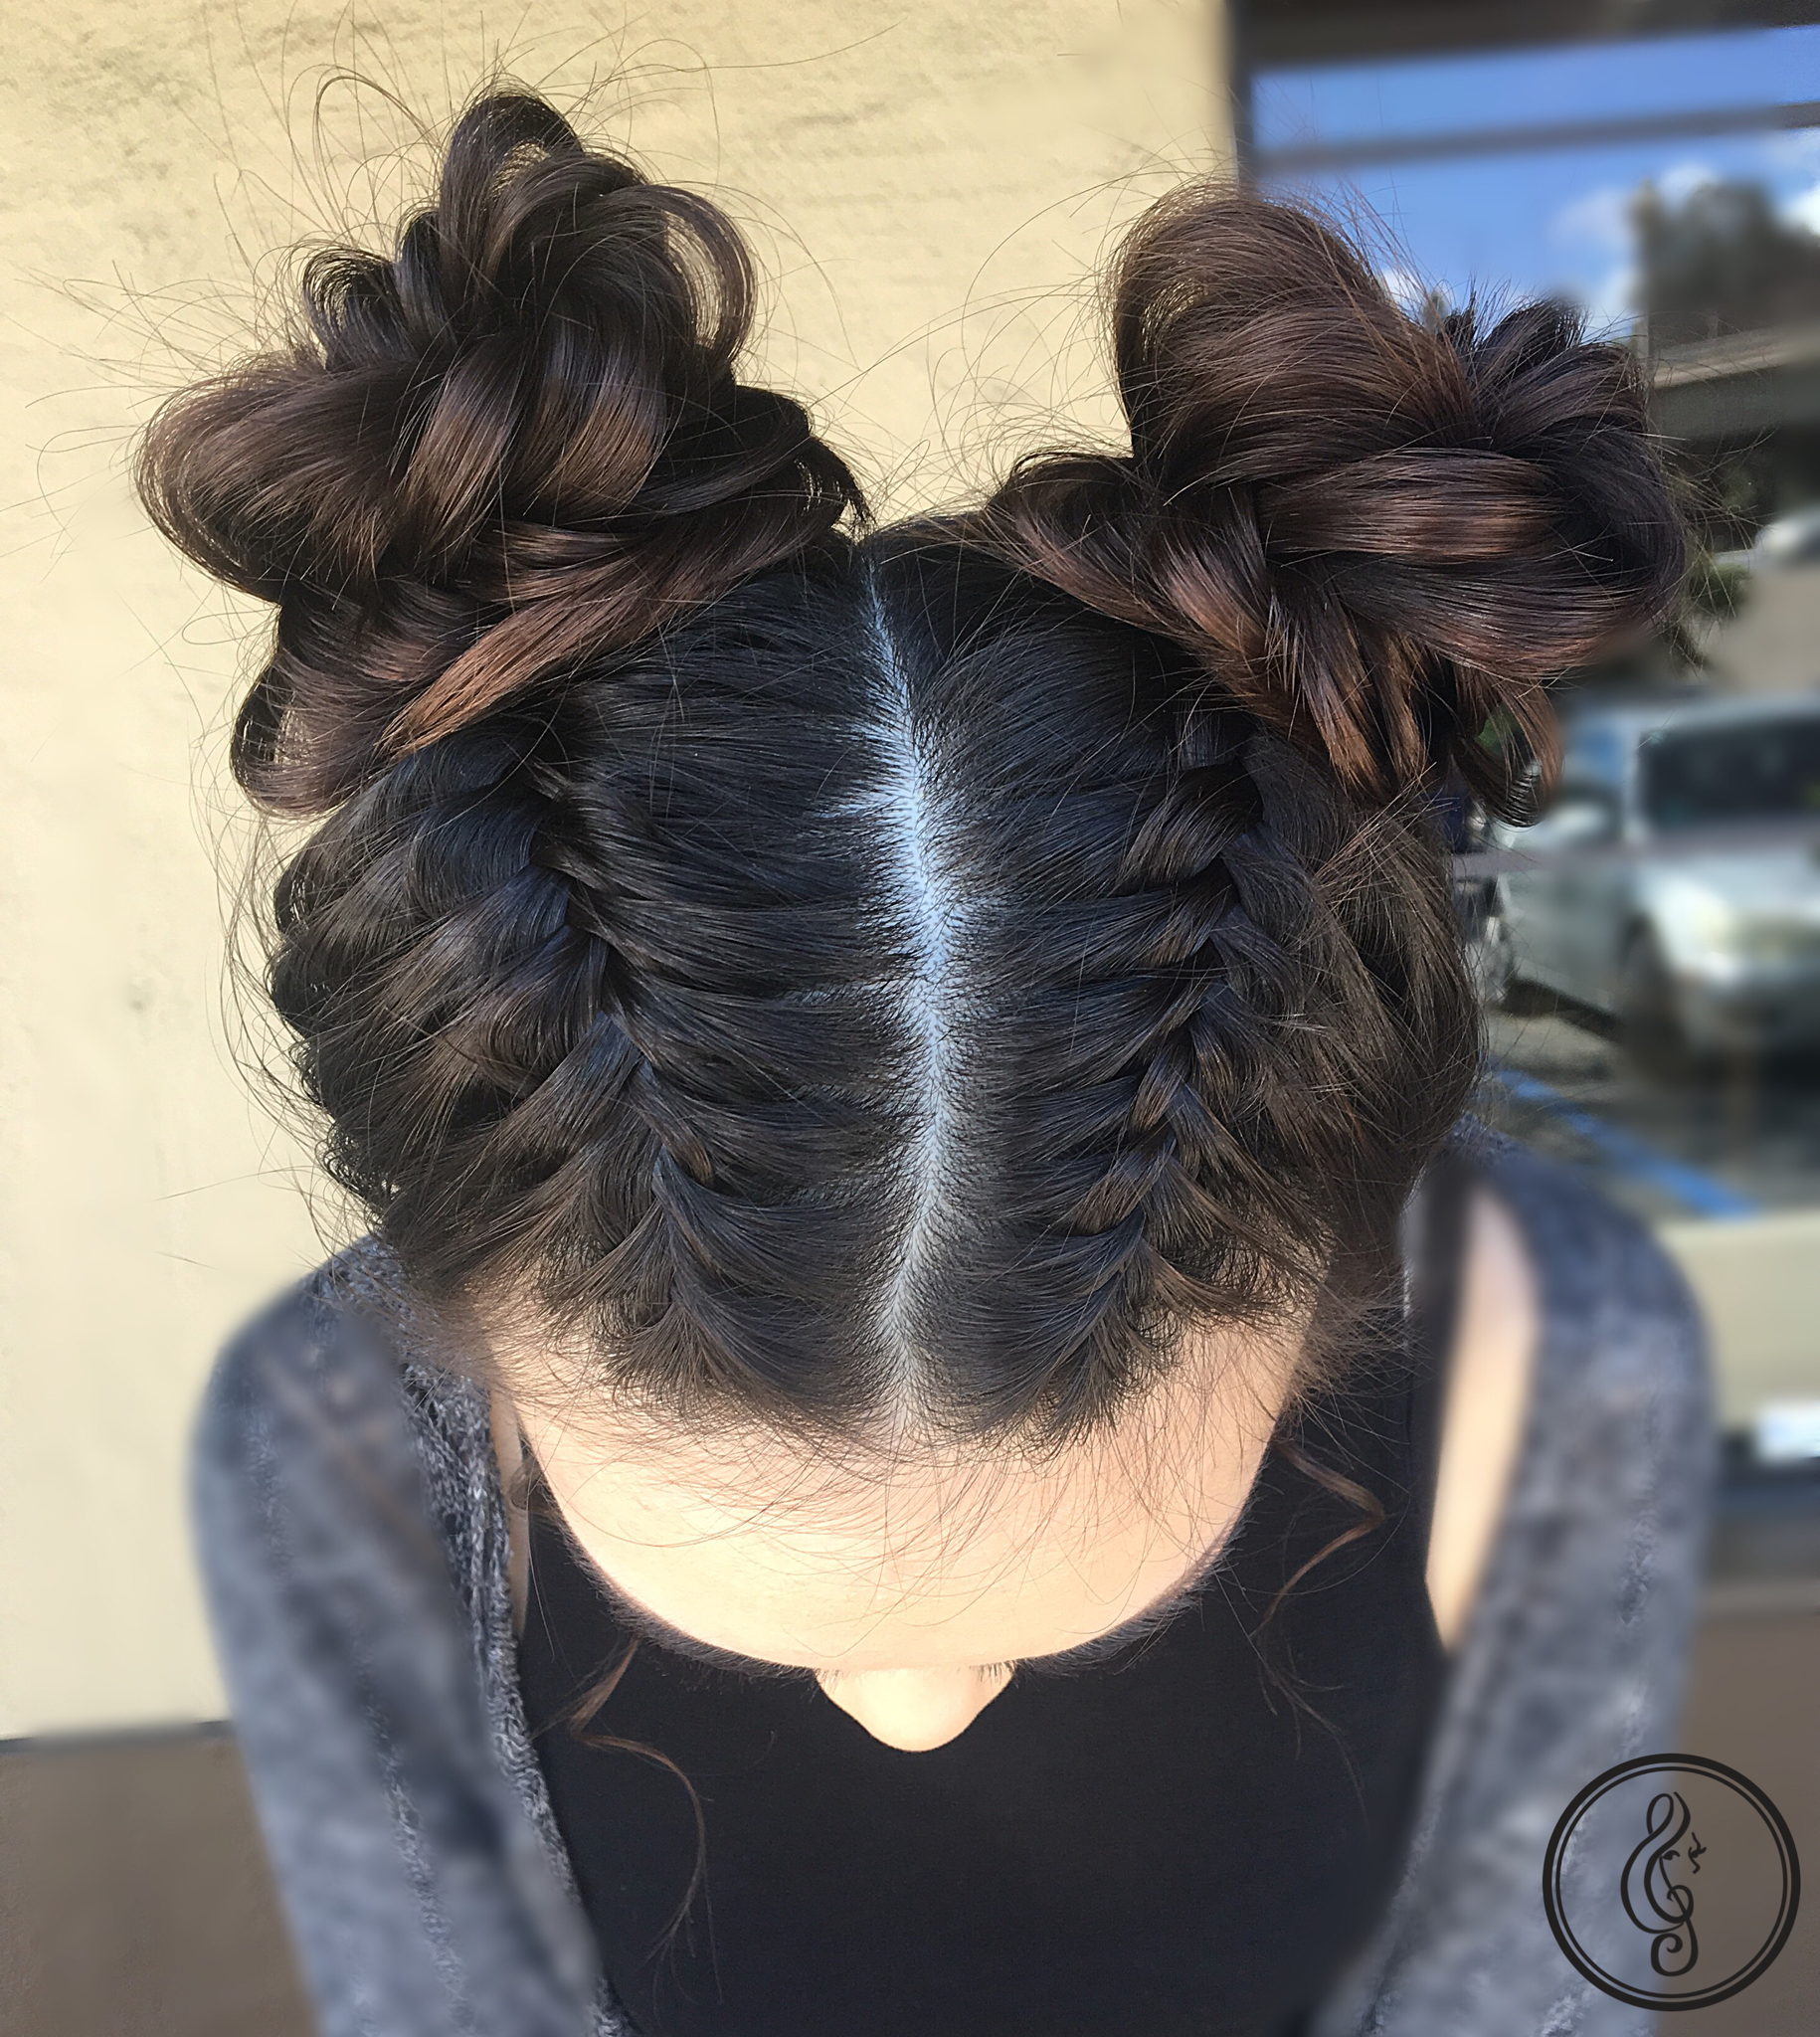 Braids and space buns! in 2019 | Braided hairstyles, Hair styles, Long hair styles